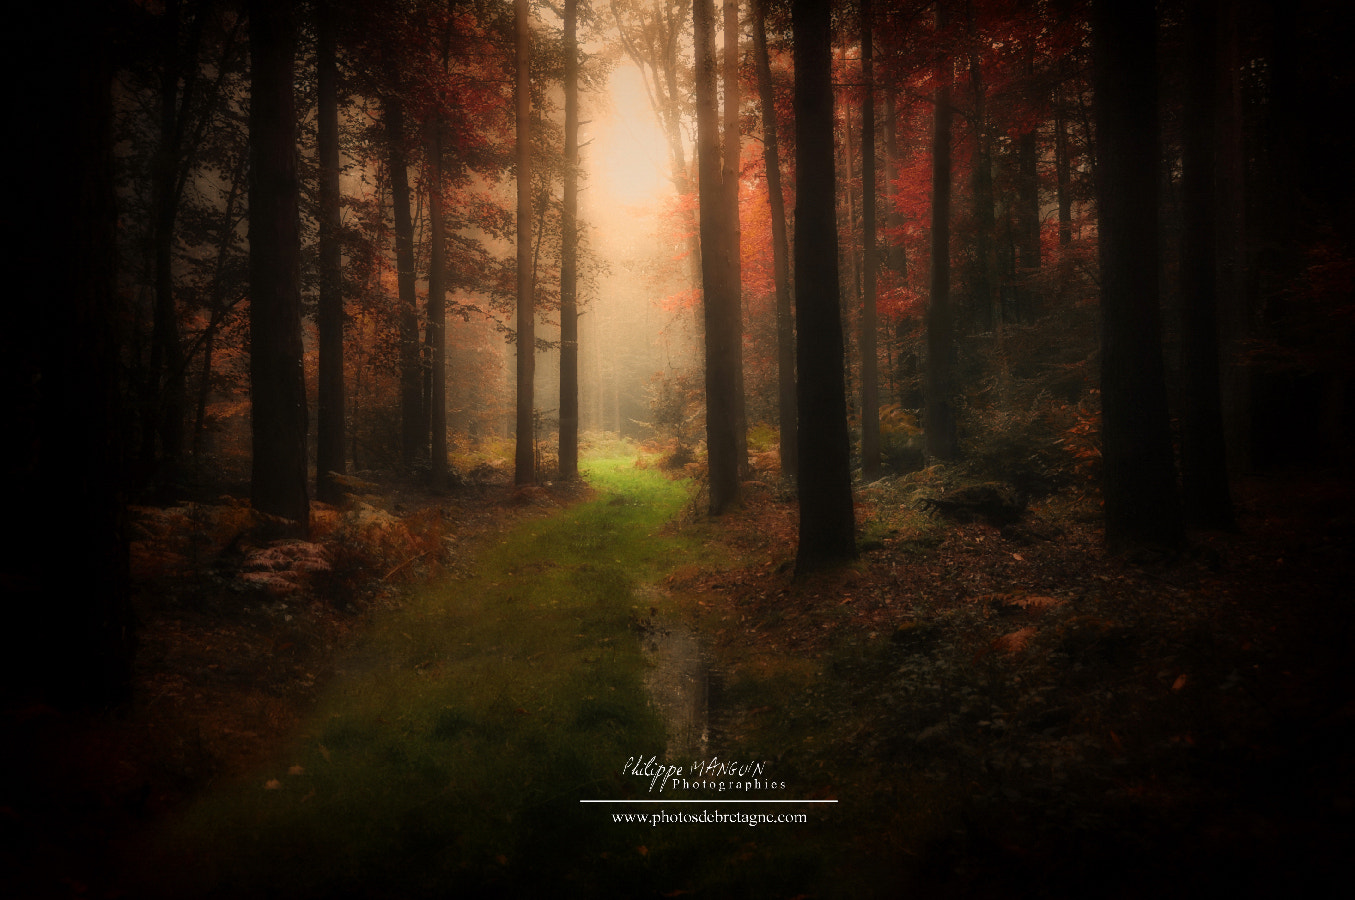 Photograph BROCELIANDE - FOREST CALL by Philippe MANGUIN on 500px